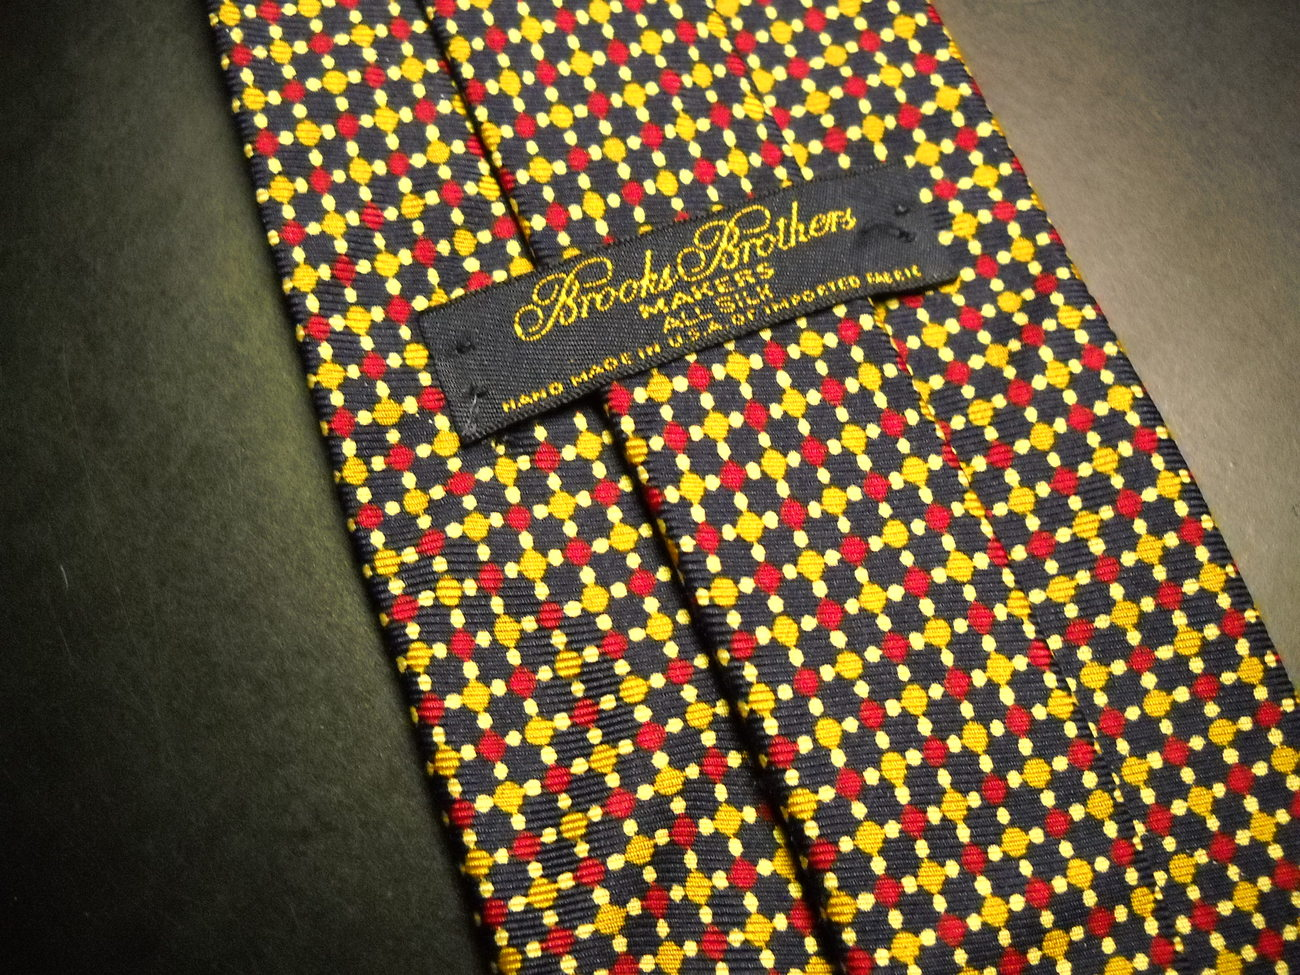 Brooks Brothers Makers Neck Tie Dark Blue Background with Gold and Red Accents